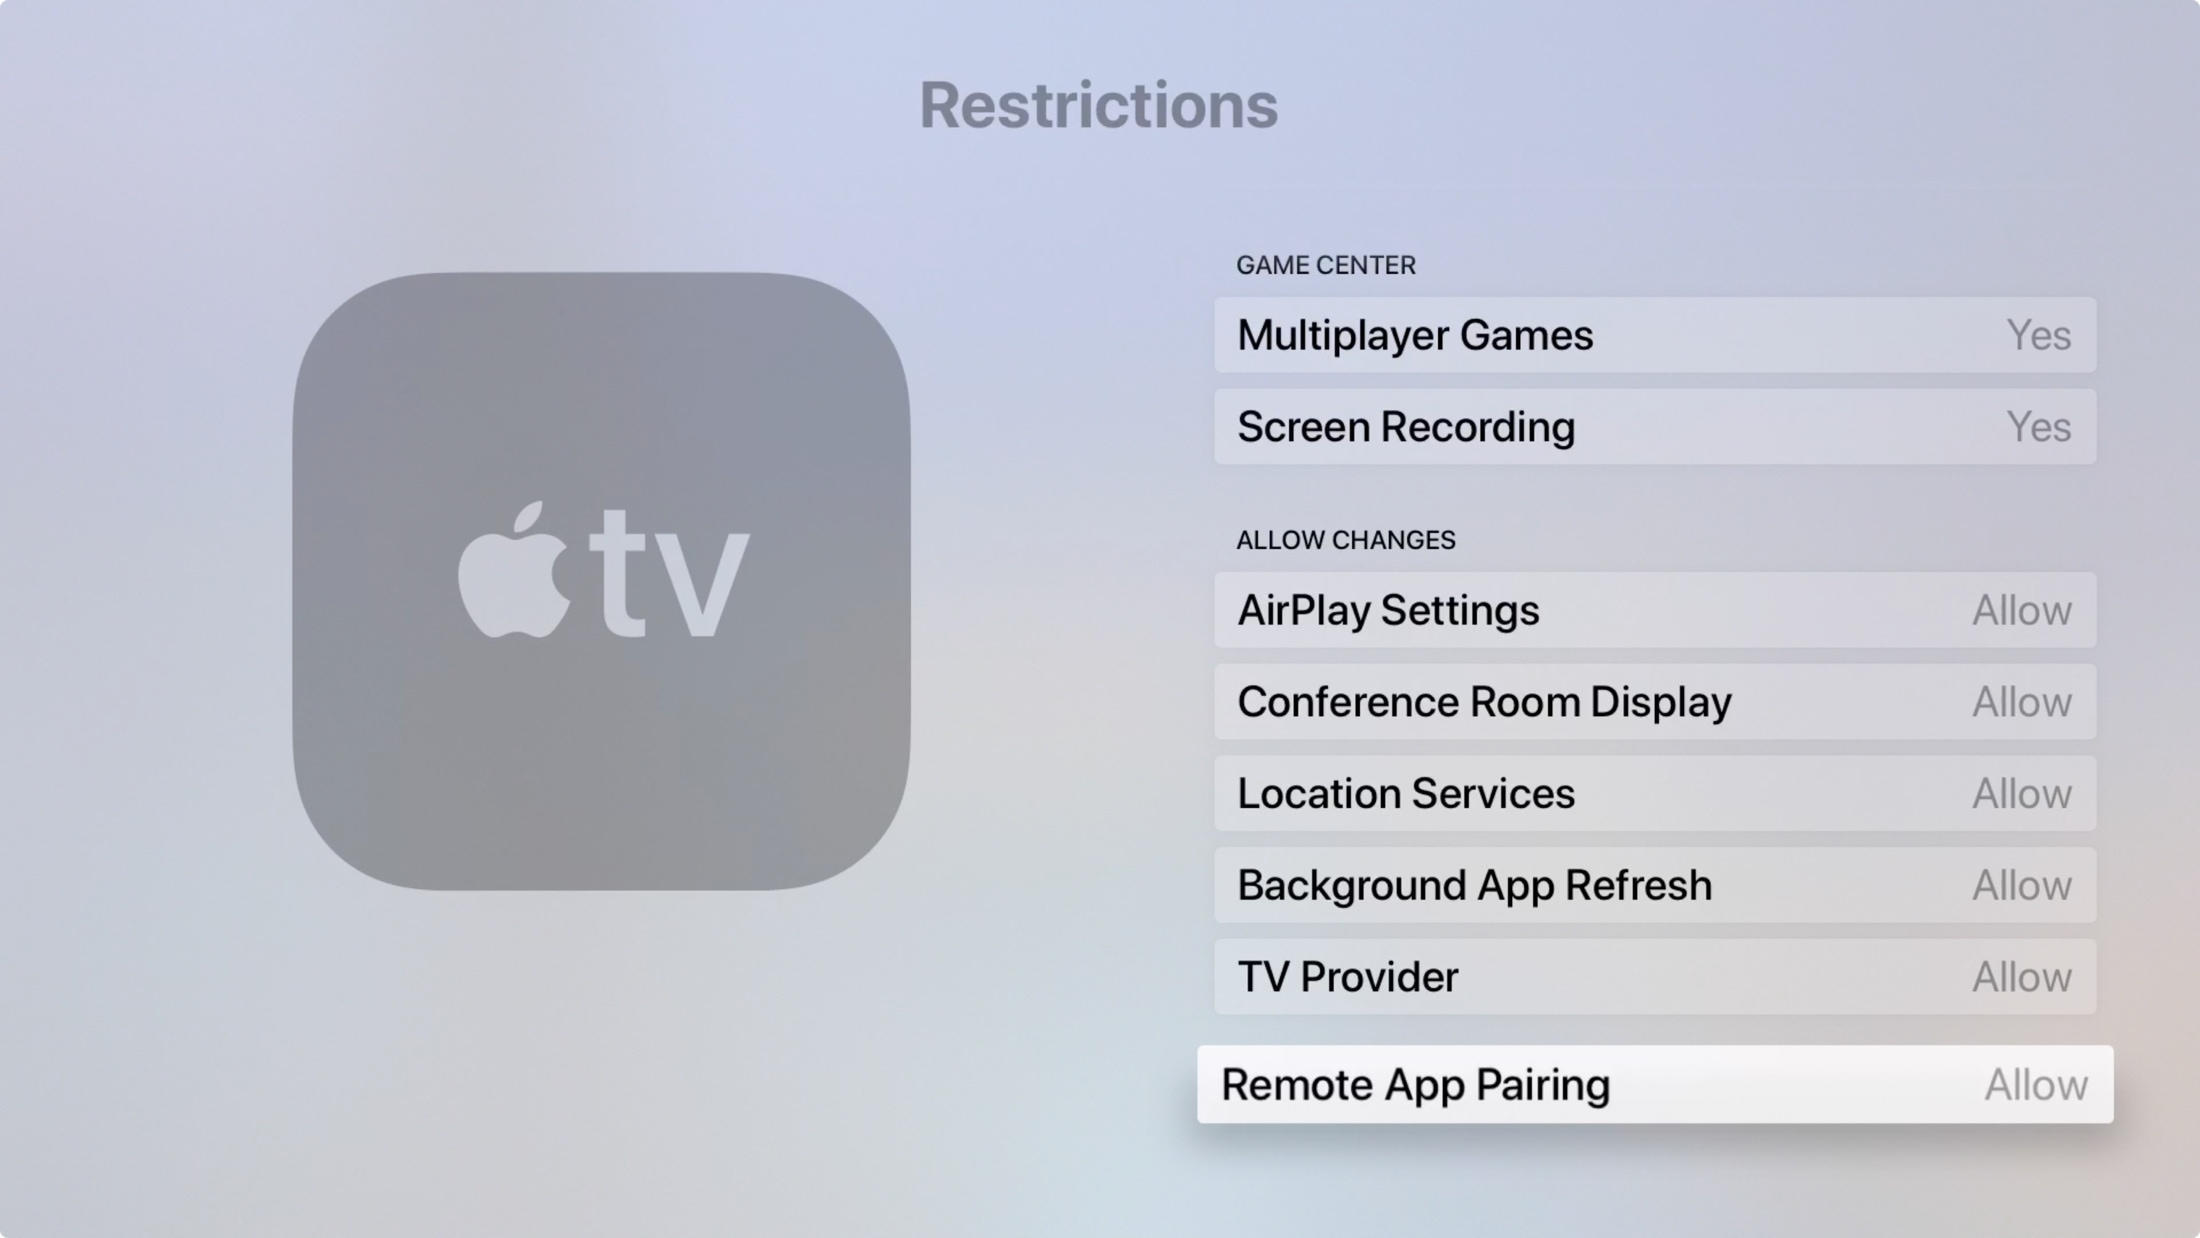 Apple TV Restrictions Allow Changes